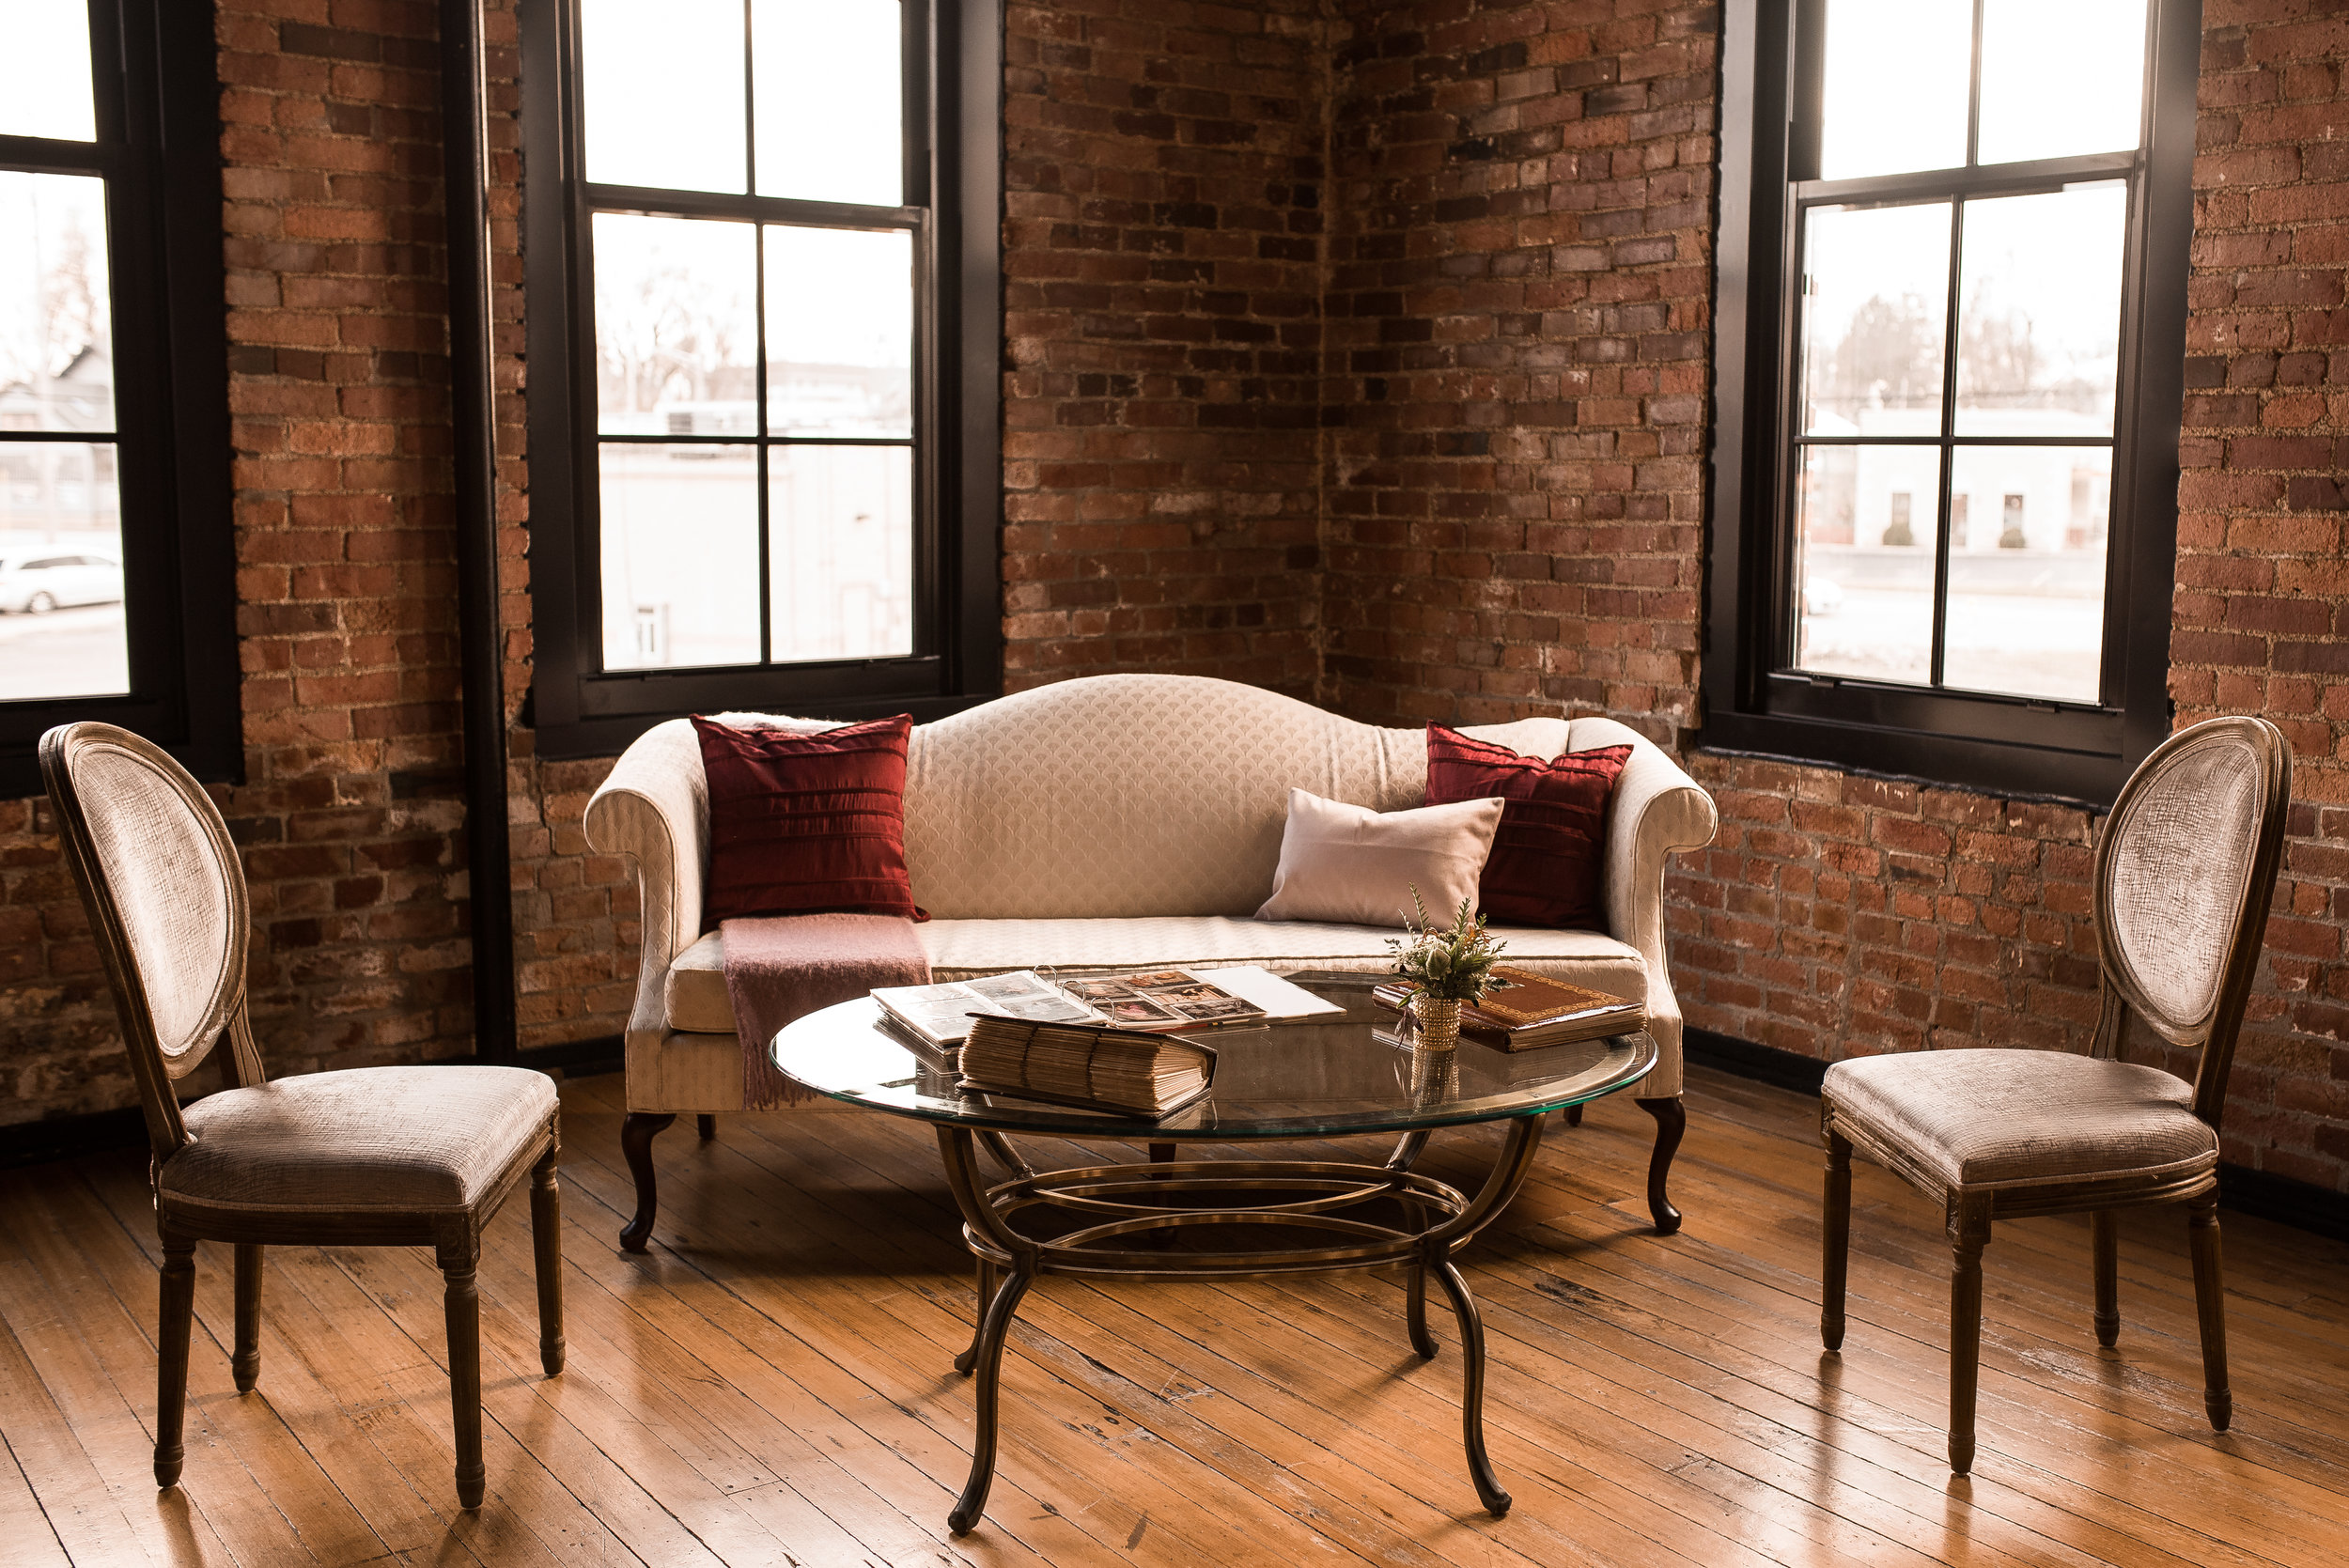 The Jane sofa along with the Valerie chairs make a great lounge - we brought out the family photo albums to share with guests!